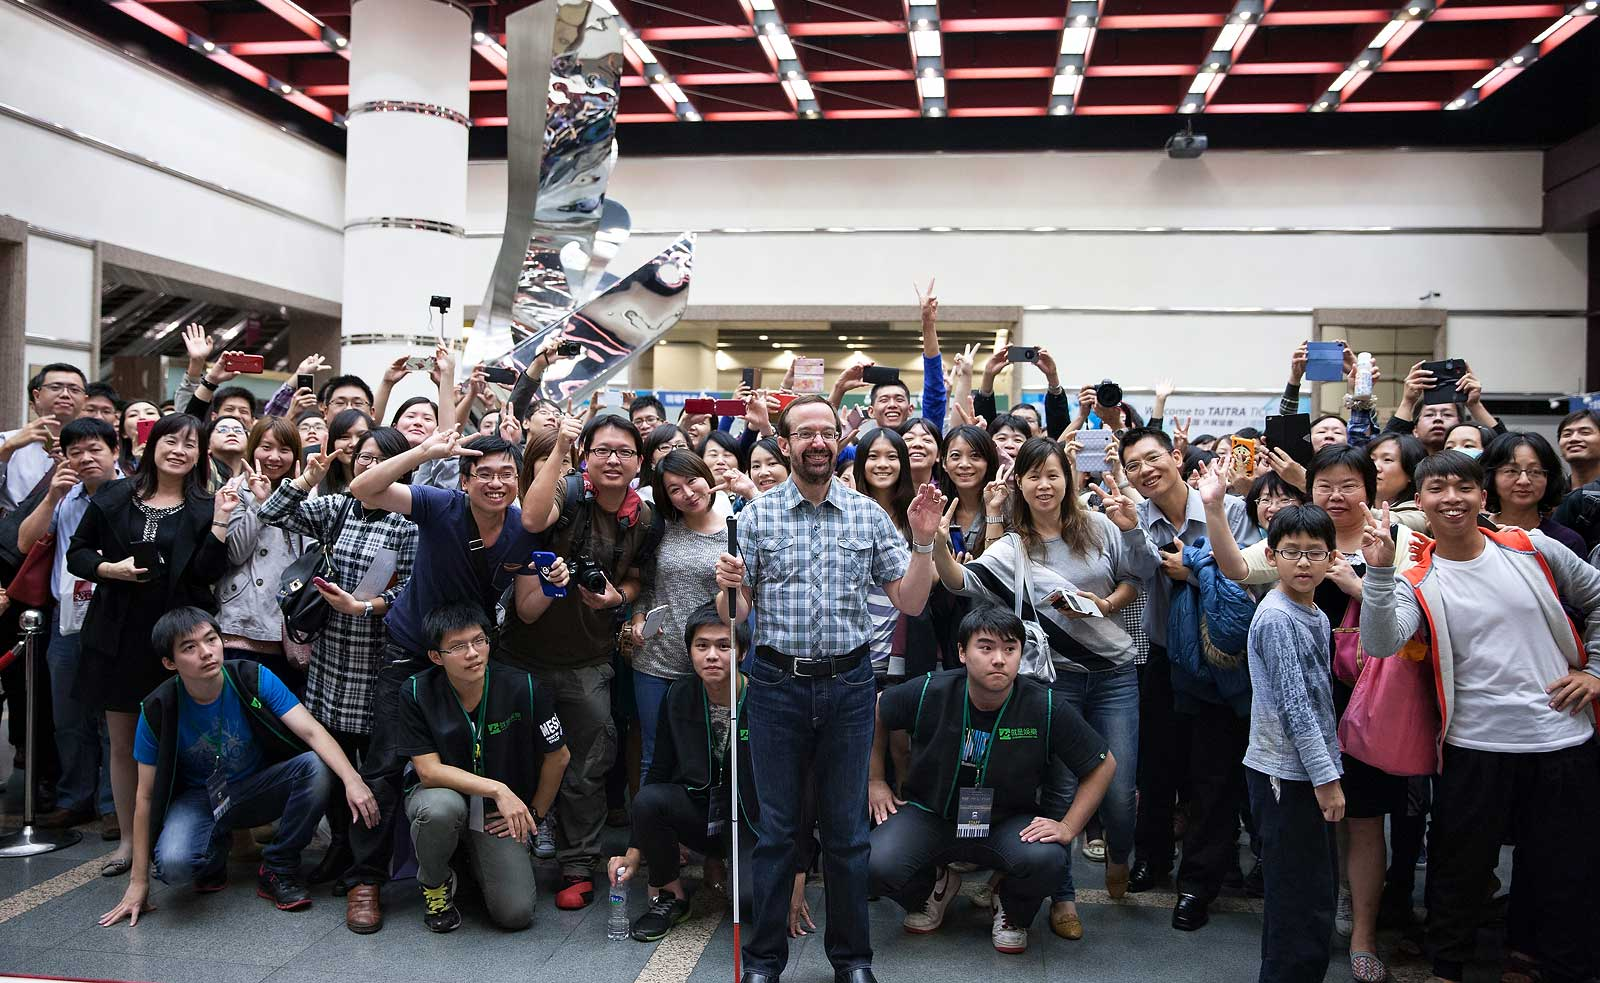 Me with my fans at a recent Taipei concert at the Taiwan International Convention Center.